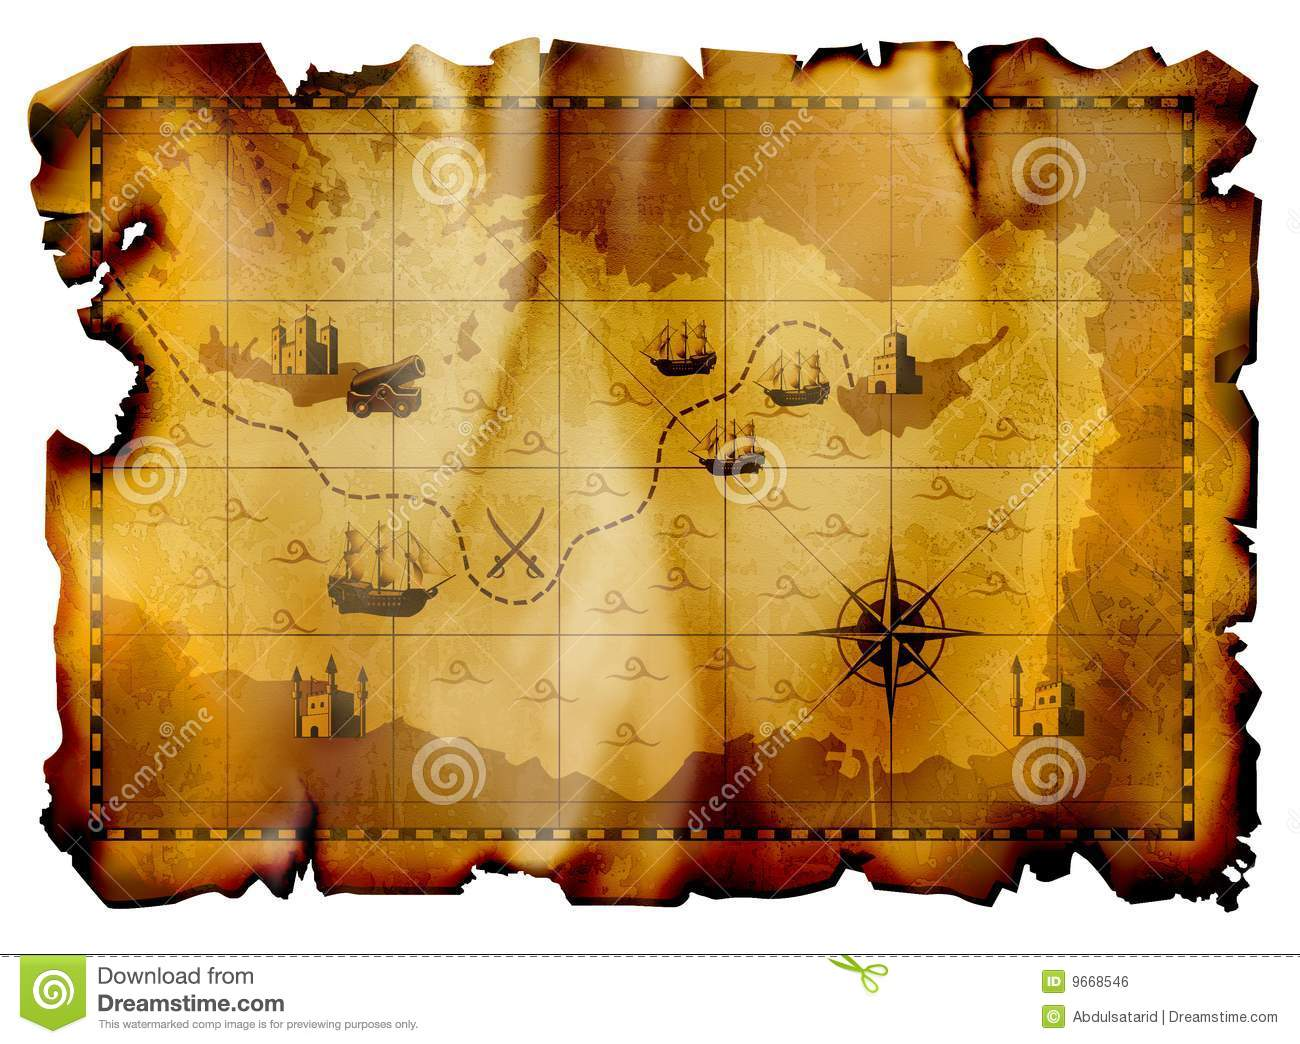 Pirate Map Royalty Free Stock Image - Image: 9668546